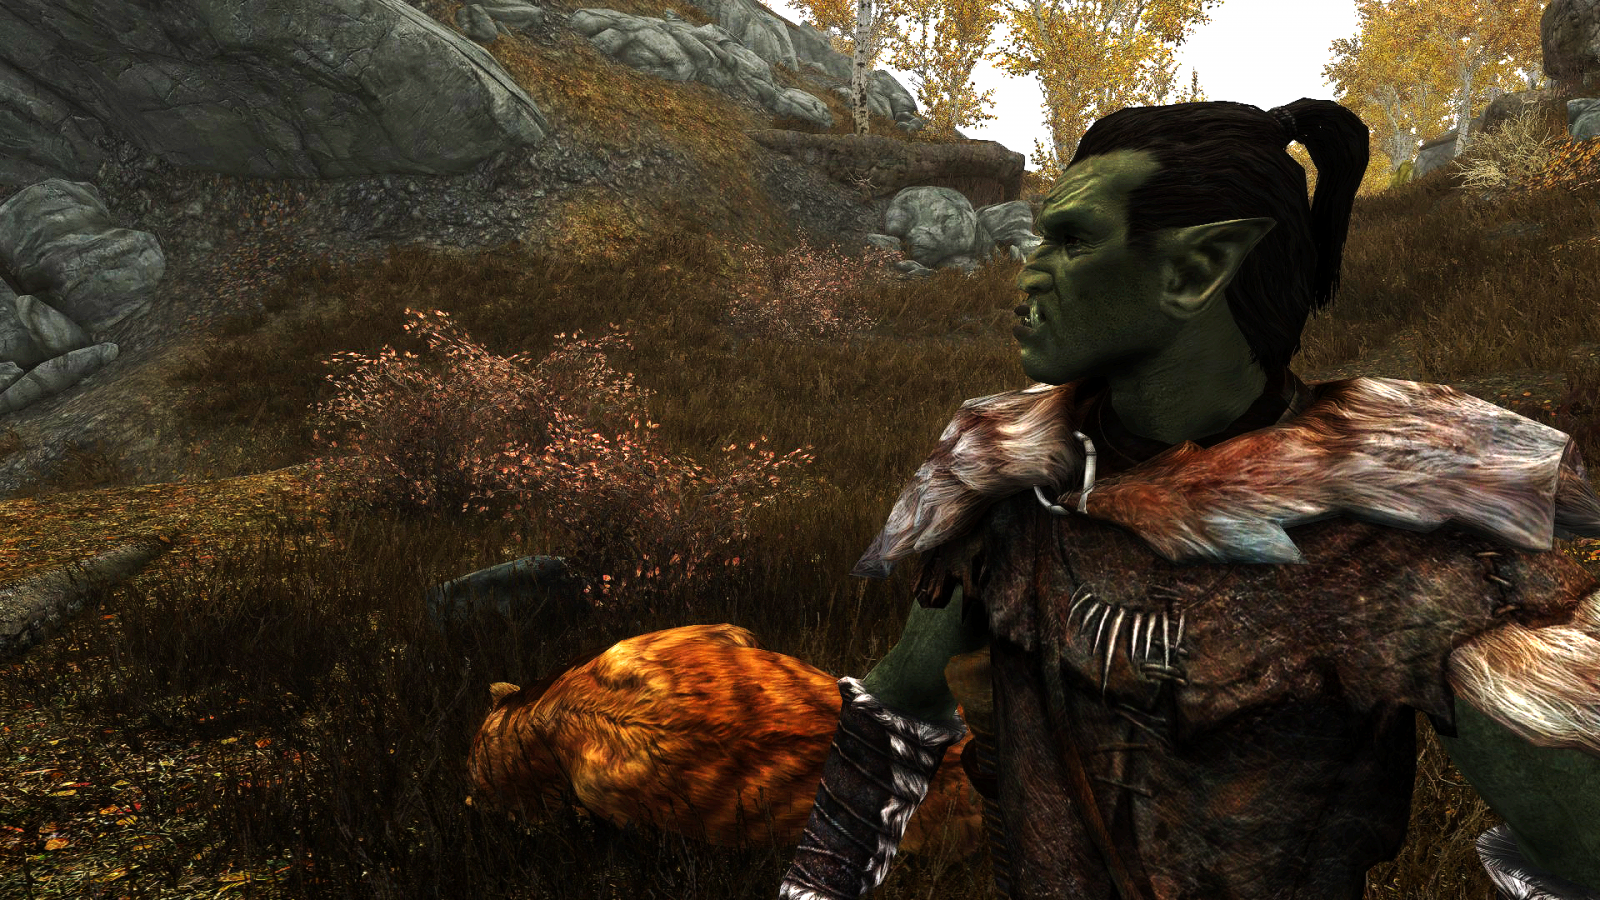 I asked the Orc what he was doing out there